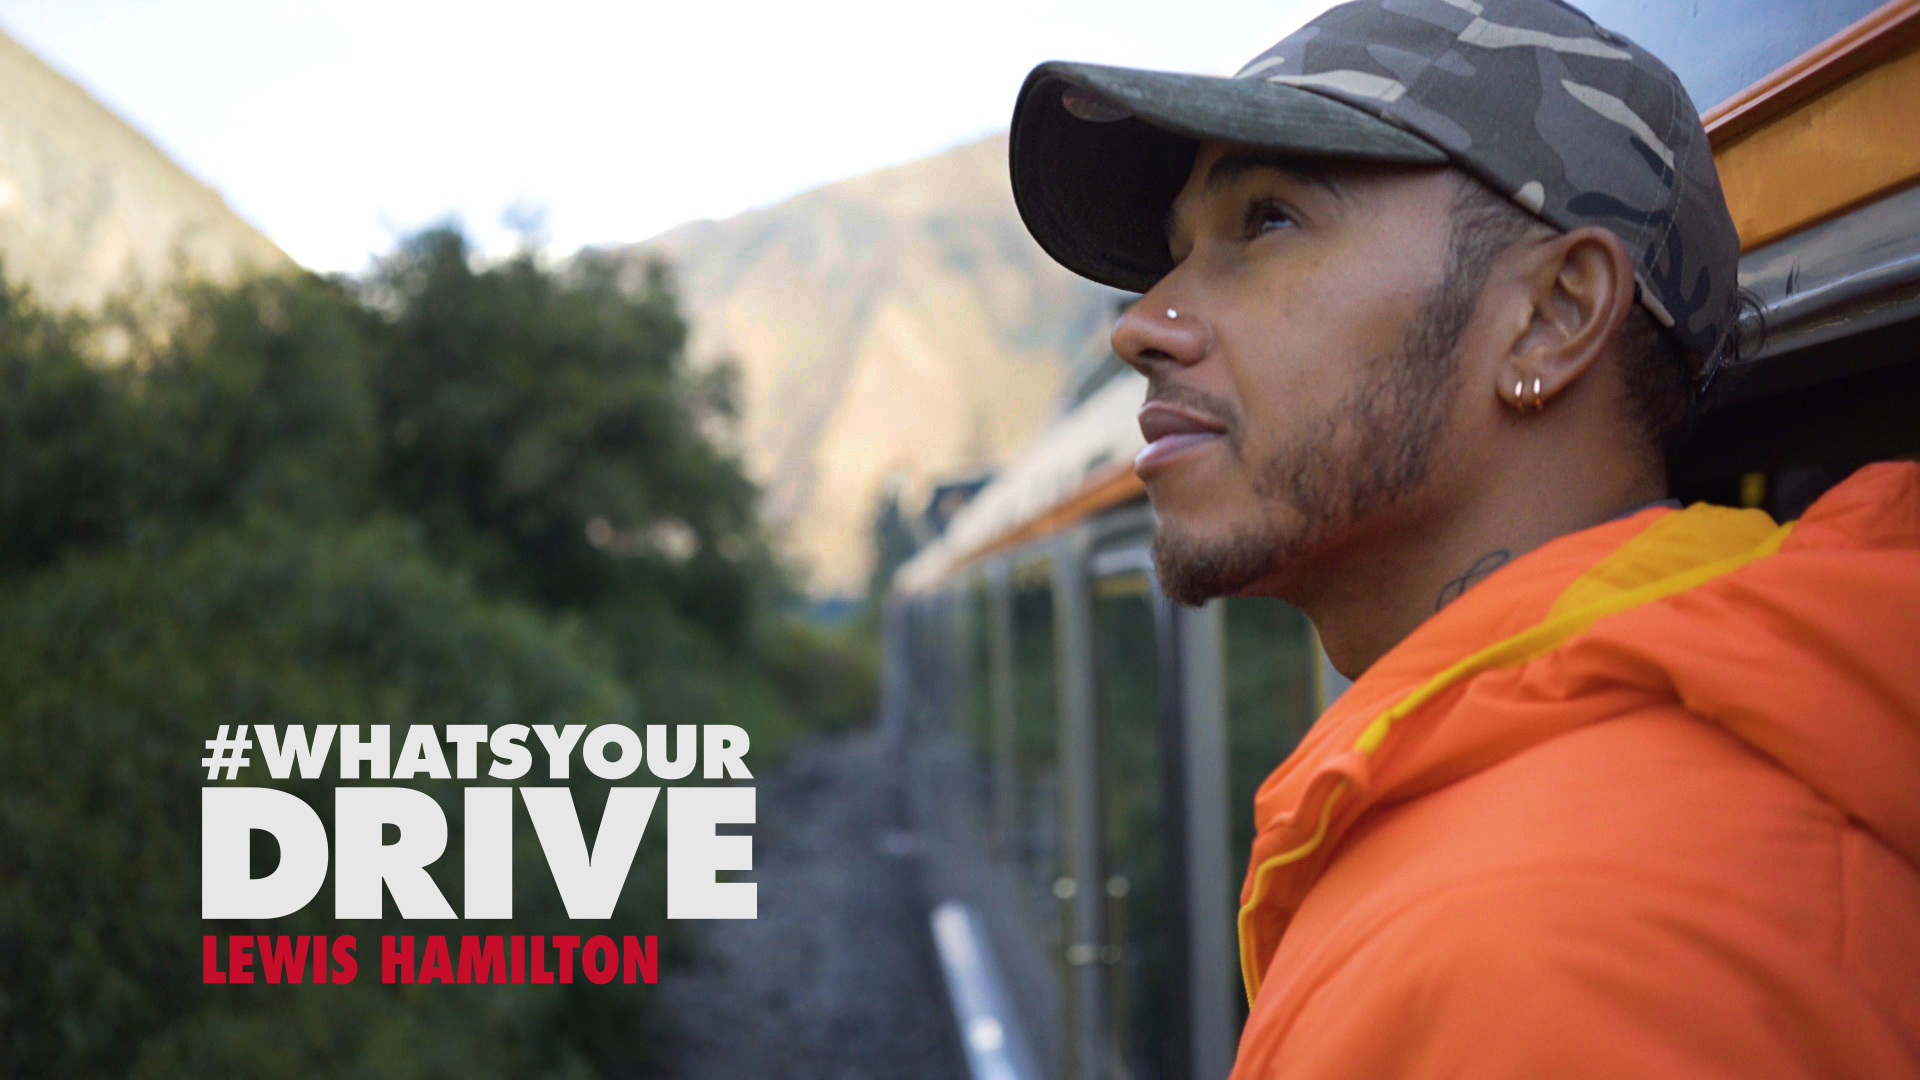 Tommy Hilfiger Announces #WhatsYourDrive Documentary Featuring